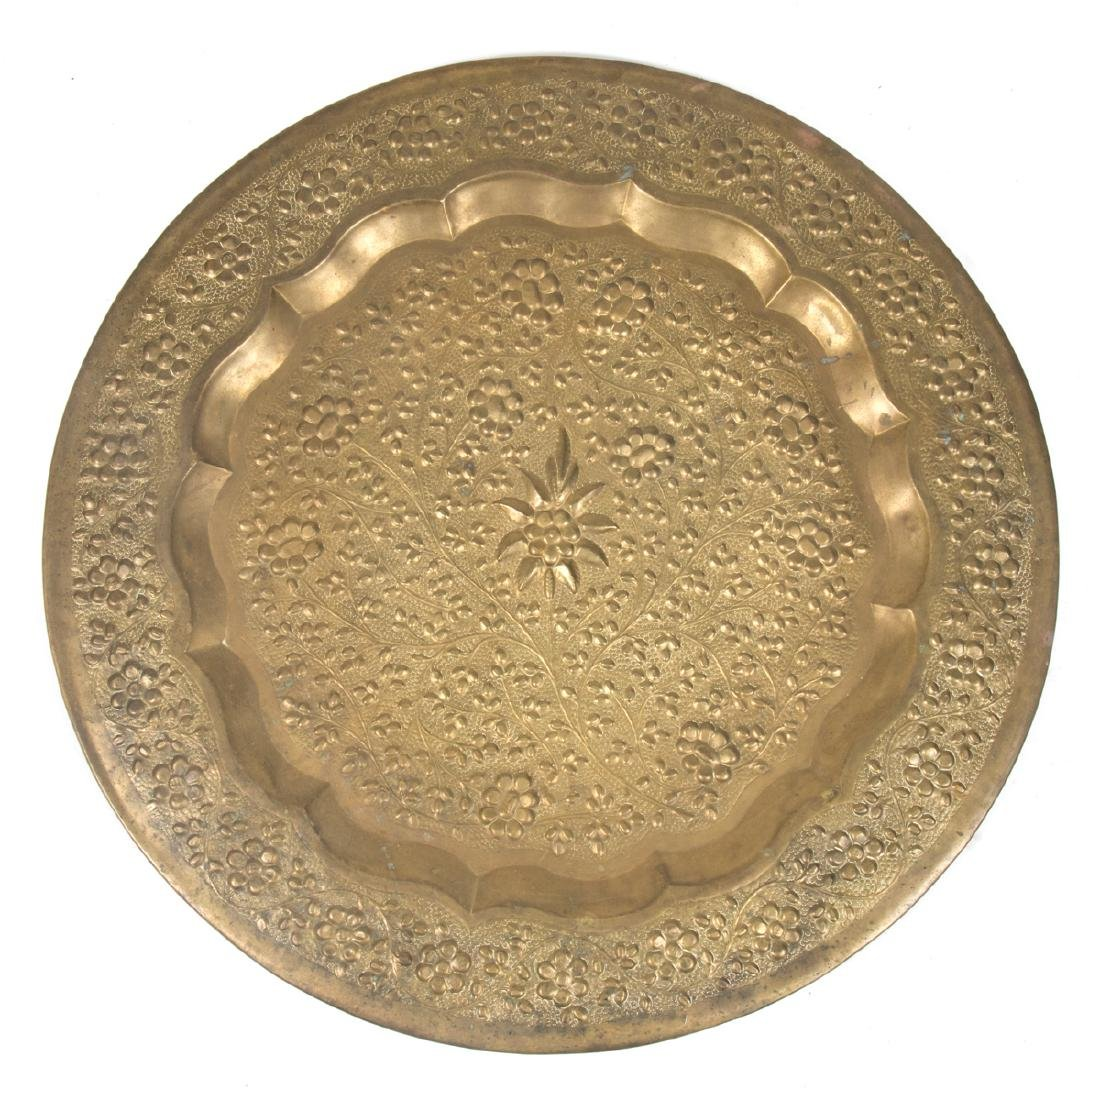 A Persian Repousse Brass Circular Tray, 20th Century.